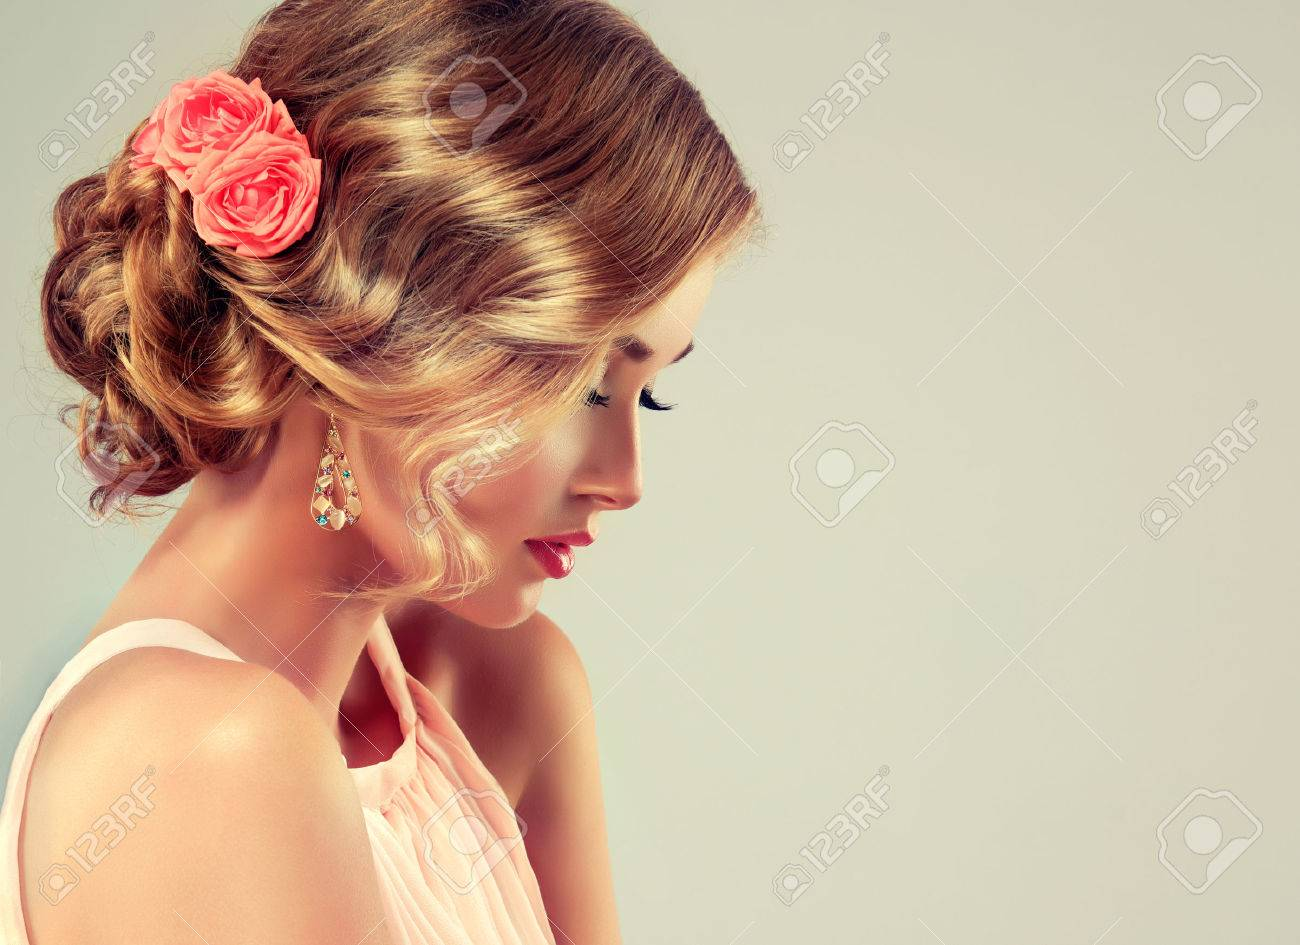 Beautiful model with elegant hairstyle . Beautiful woman with colourful makeup and fashion wedding hairstyle. Rose flowers in the hair. - 57053113